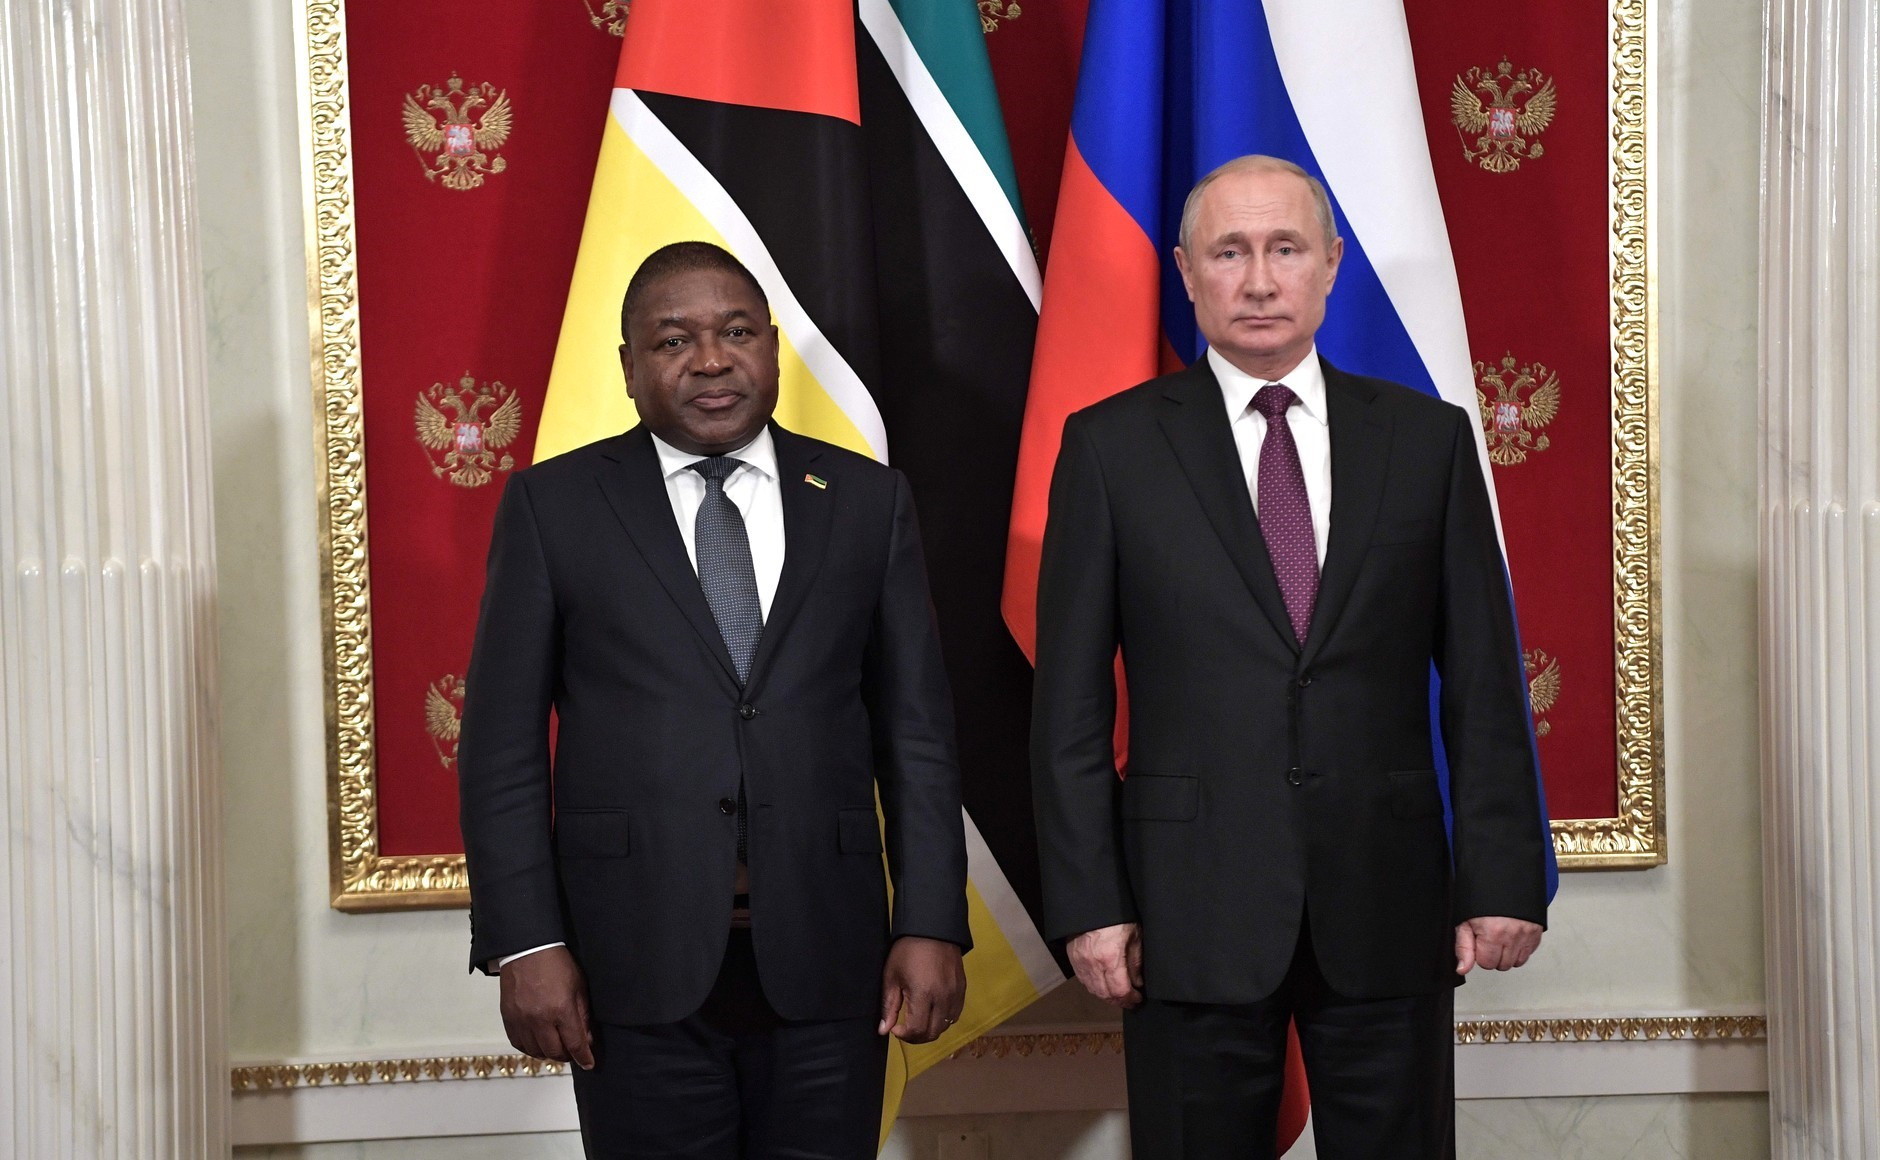 Russian Military Personnel in Mozambique: Bringing Another African Nation Closer to Moscow